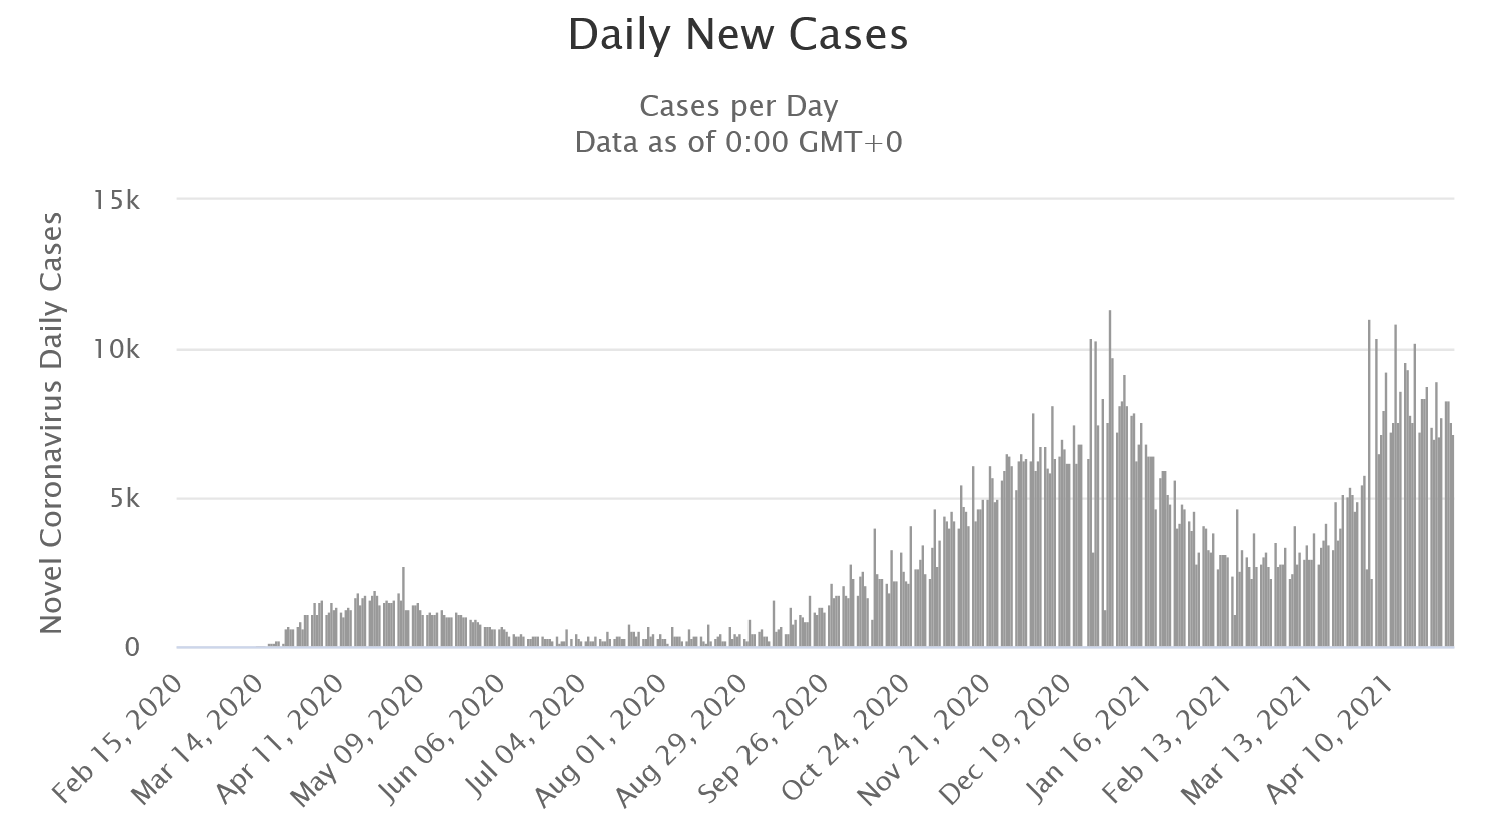 Image of daily new Covid-19 cases for Canada showing three distinct waves with the first peak looking lower than 2k, the second and third peaks around 7 to 8k with several spikes above 10k